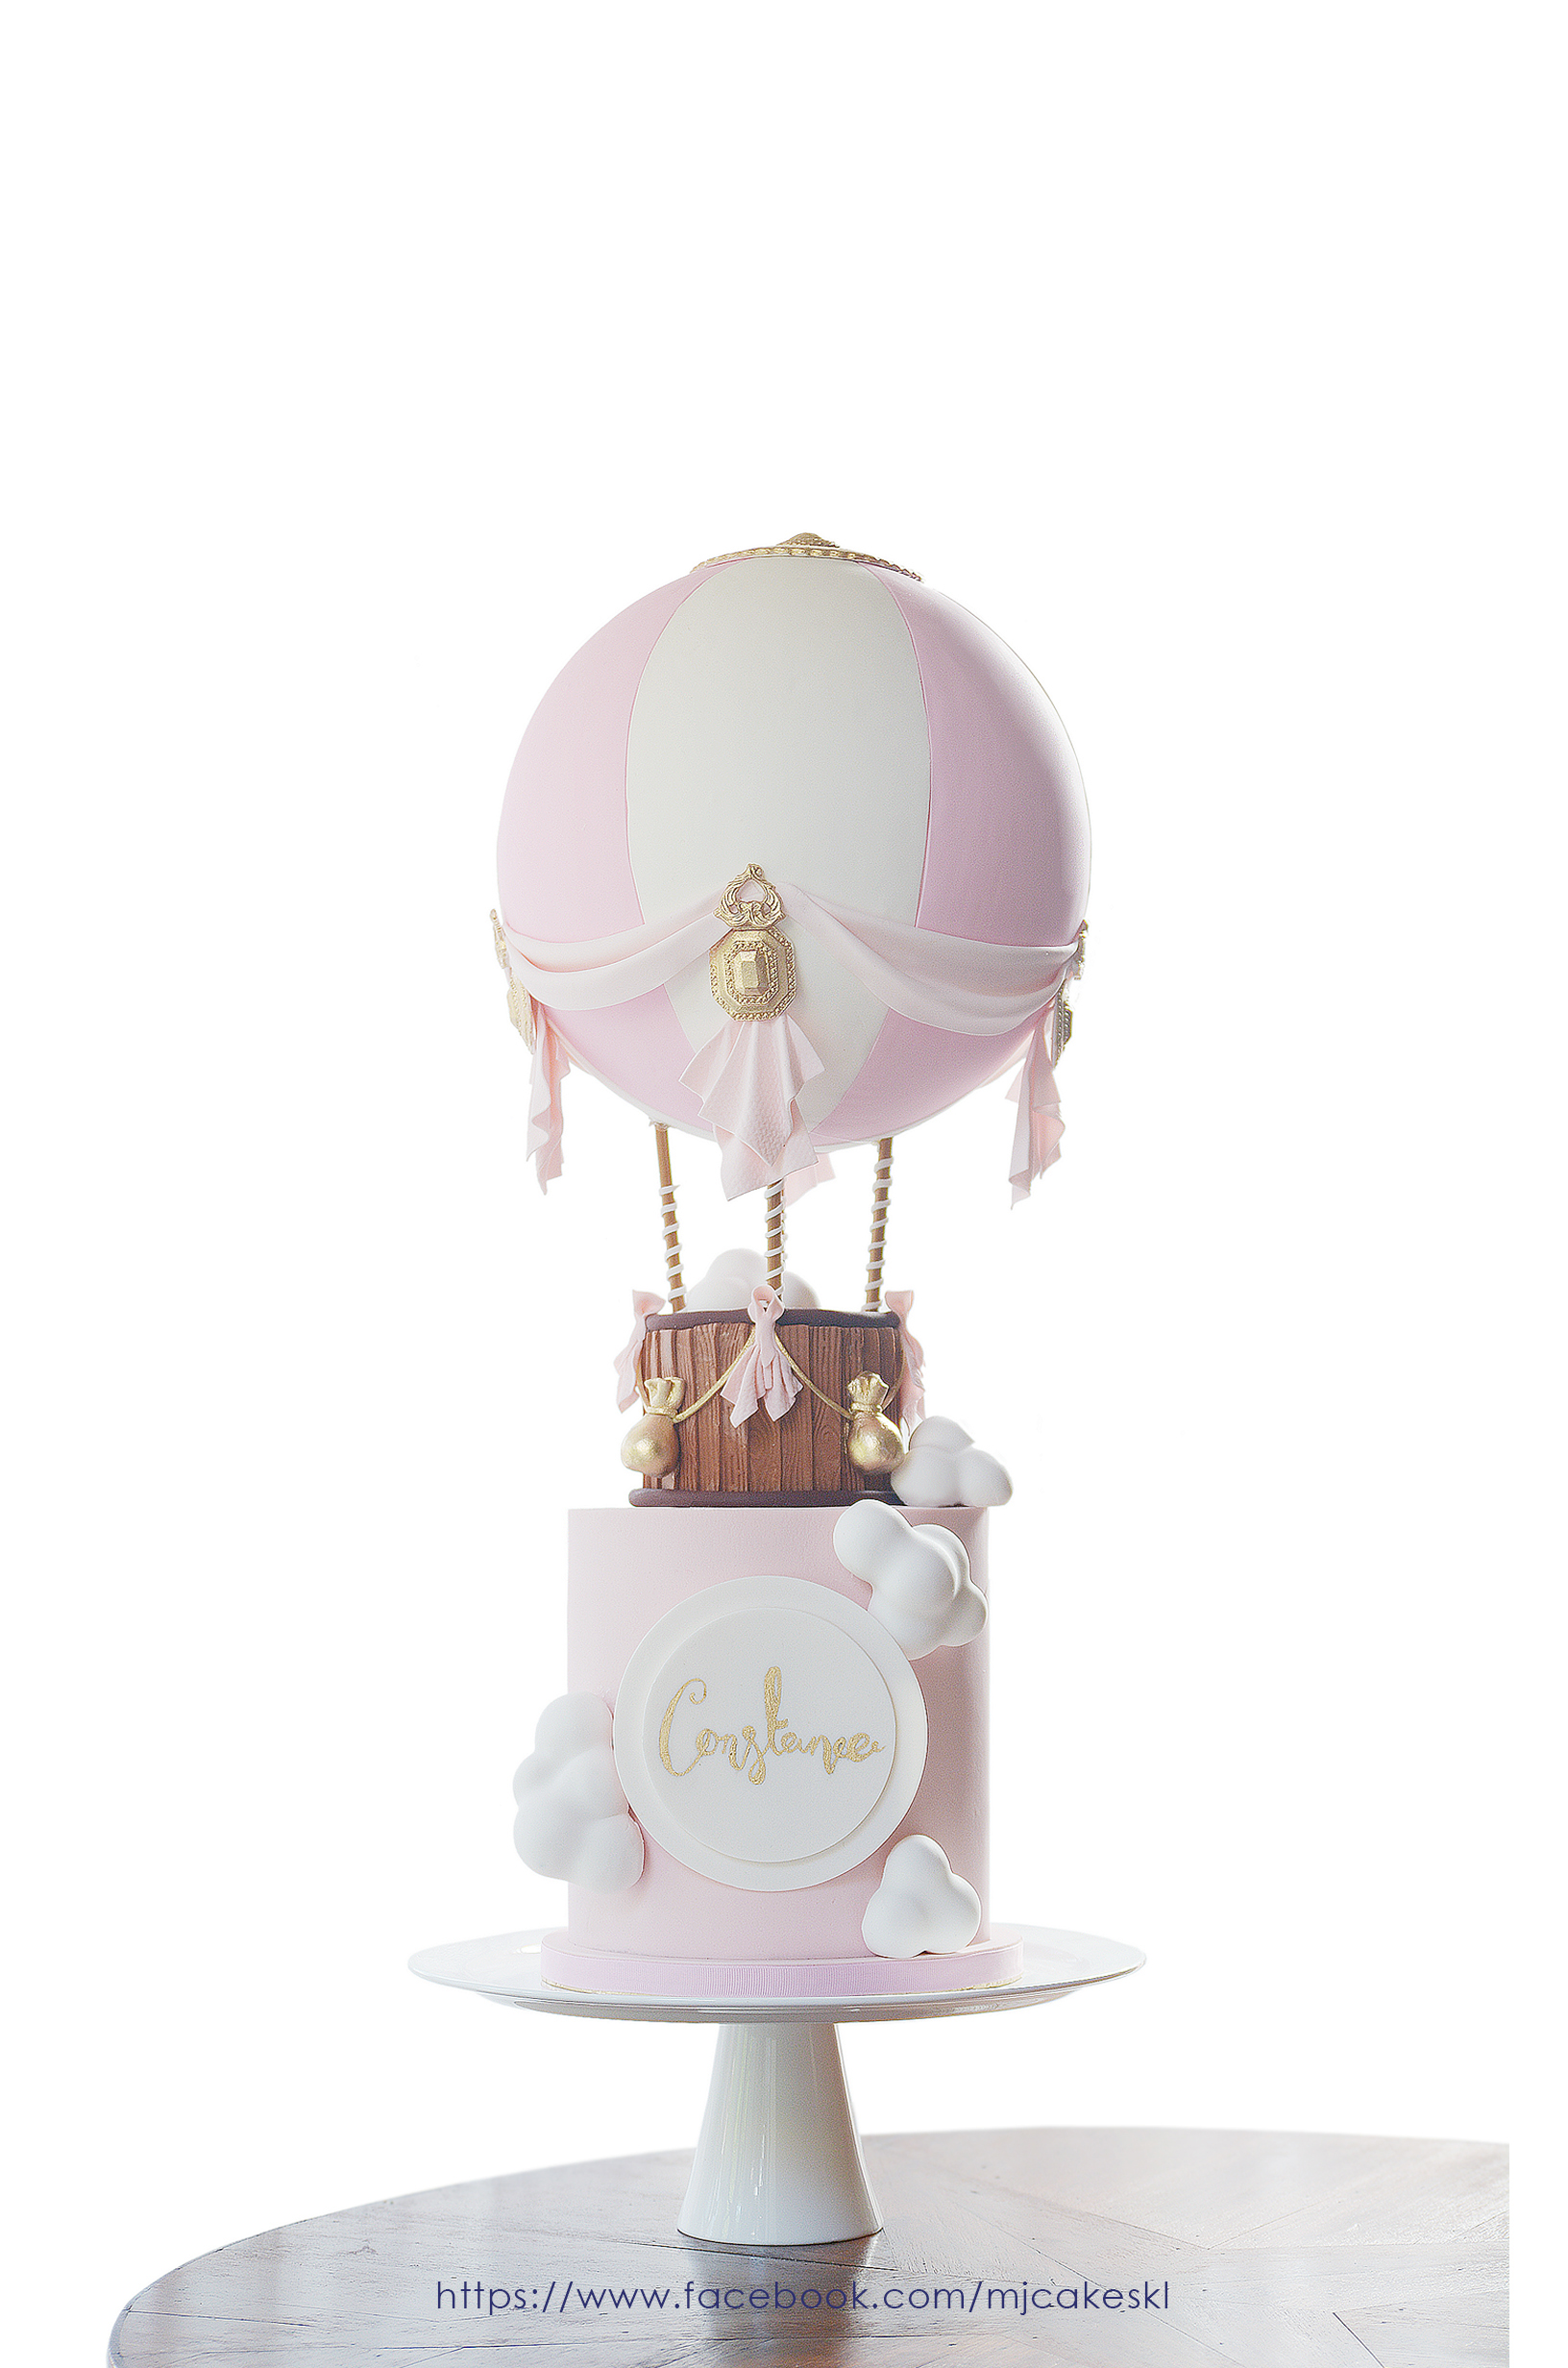 Pink and white hot air ballon fondant cake